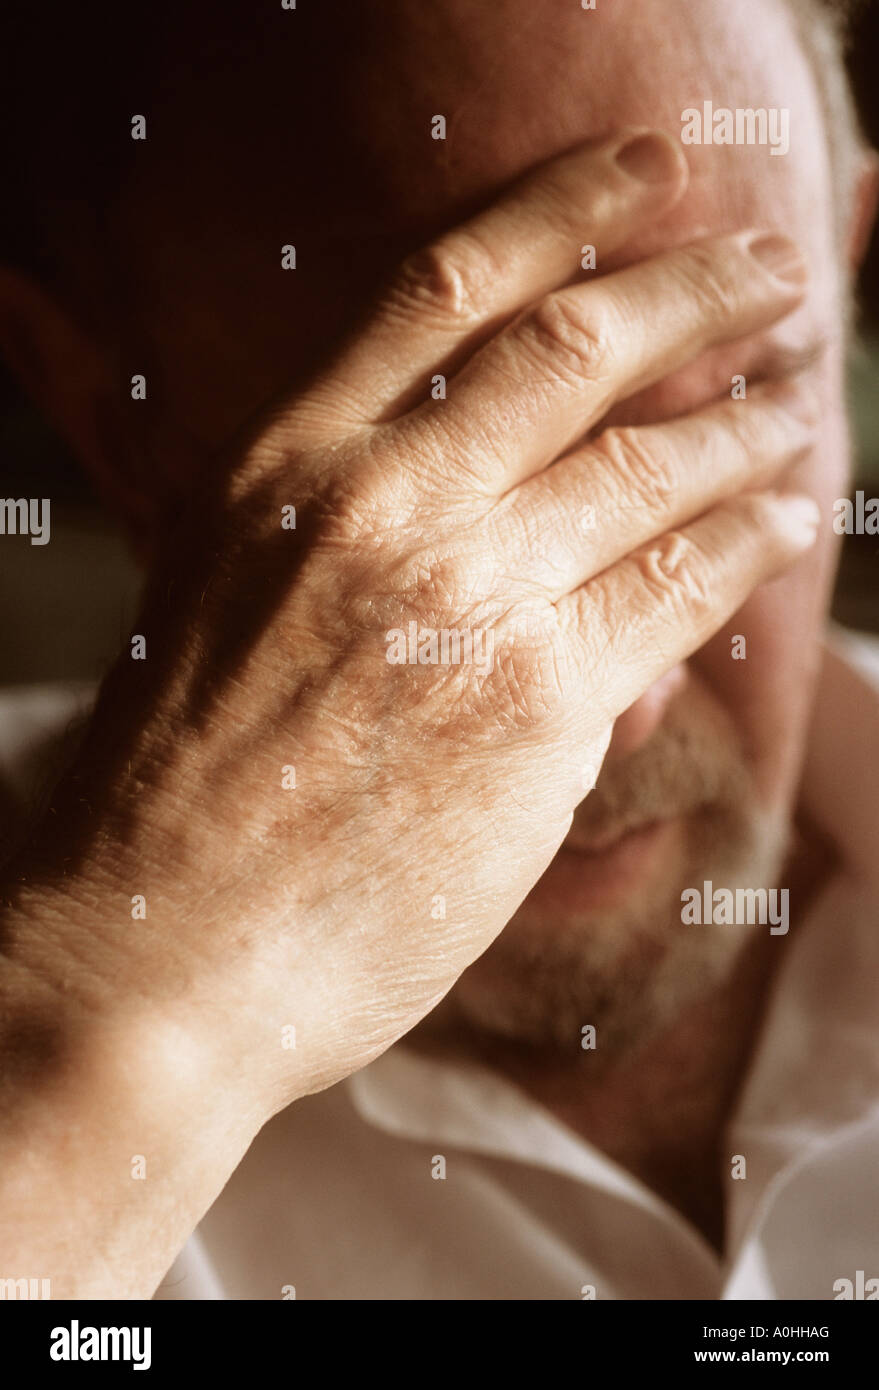 Close-up Mature Man With His Hand to His Head Tired Dejected Showing Pain Suffering Unhappy - Stock Image